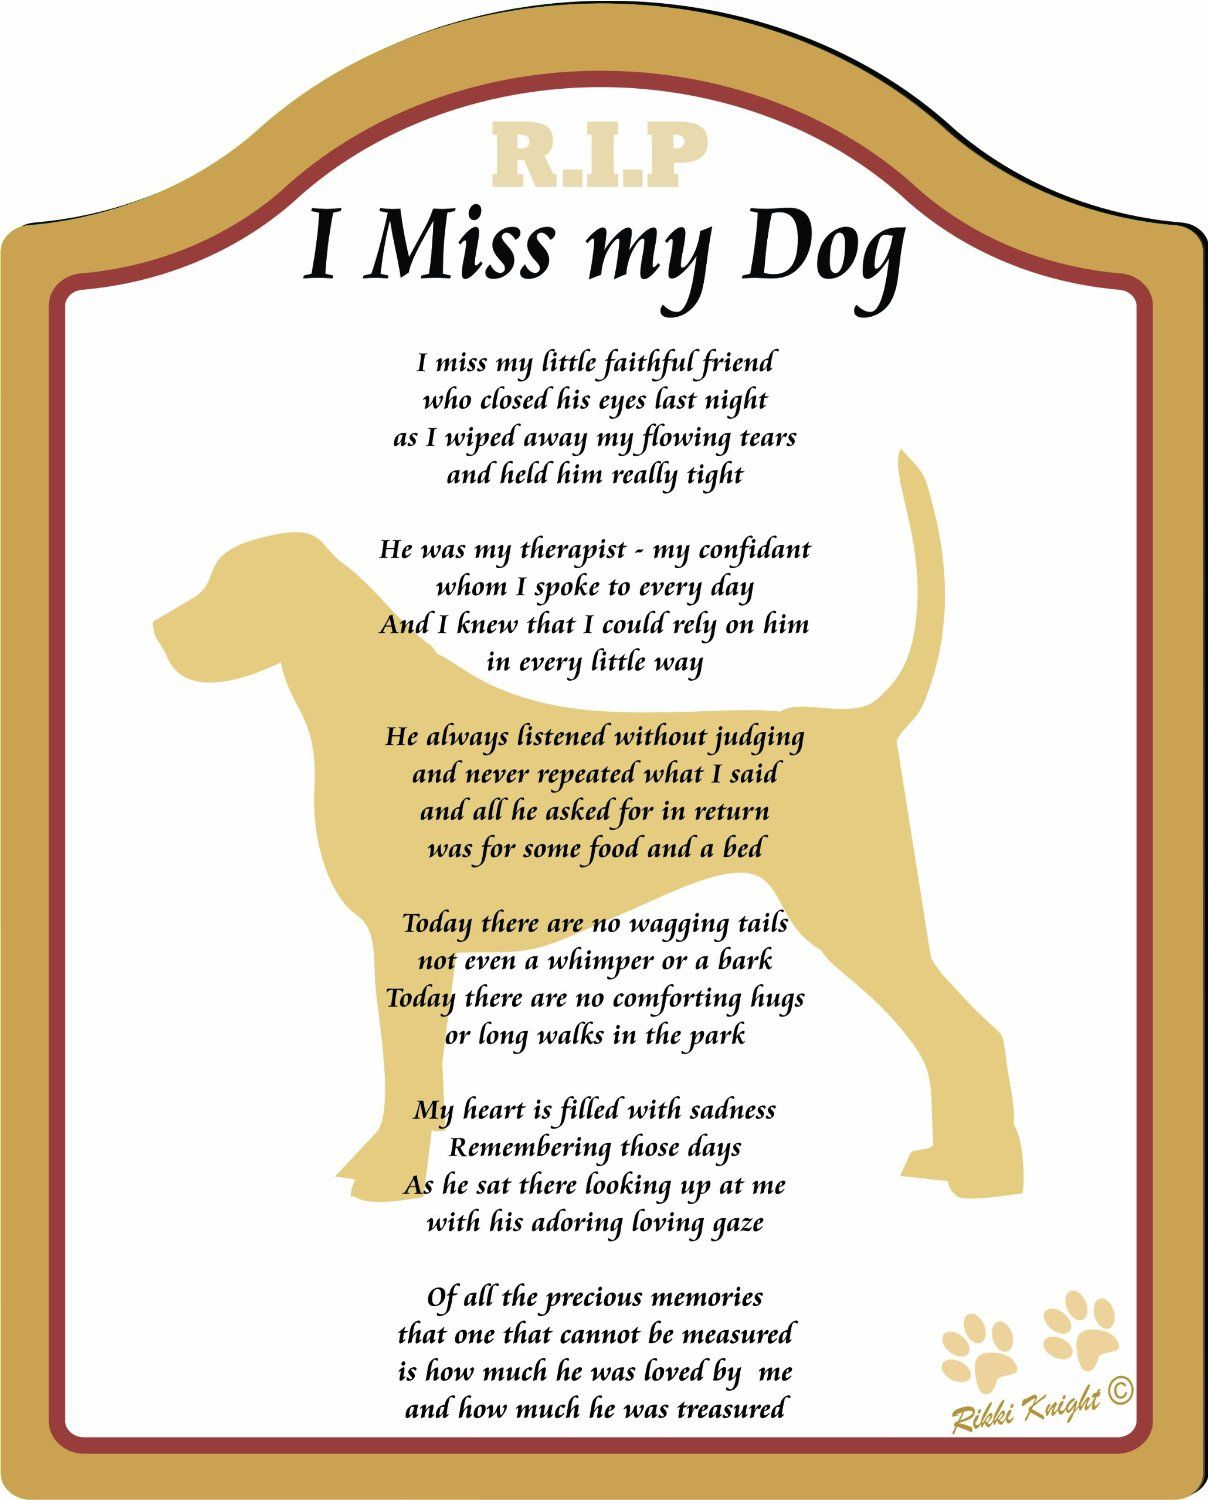 I Miss My Dog Poem